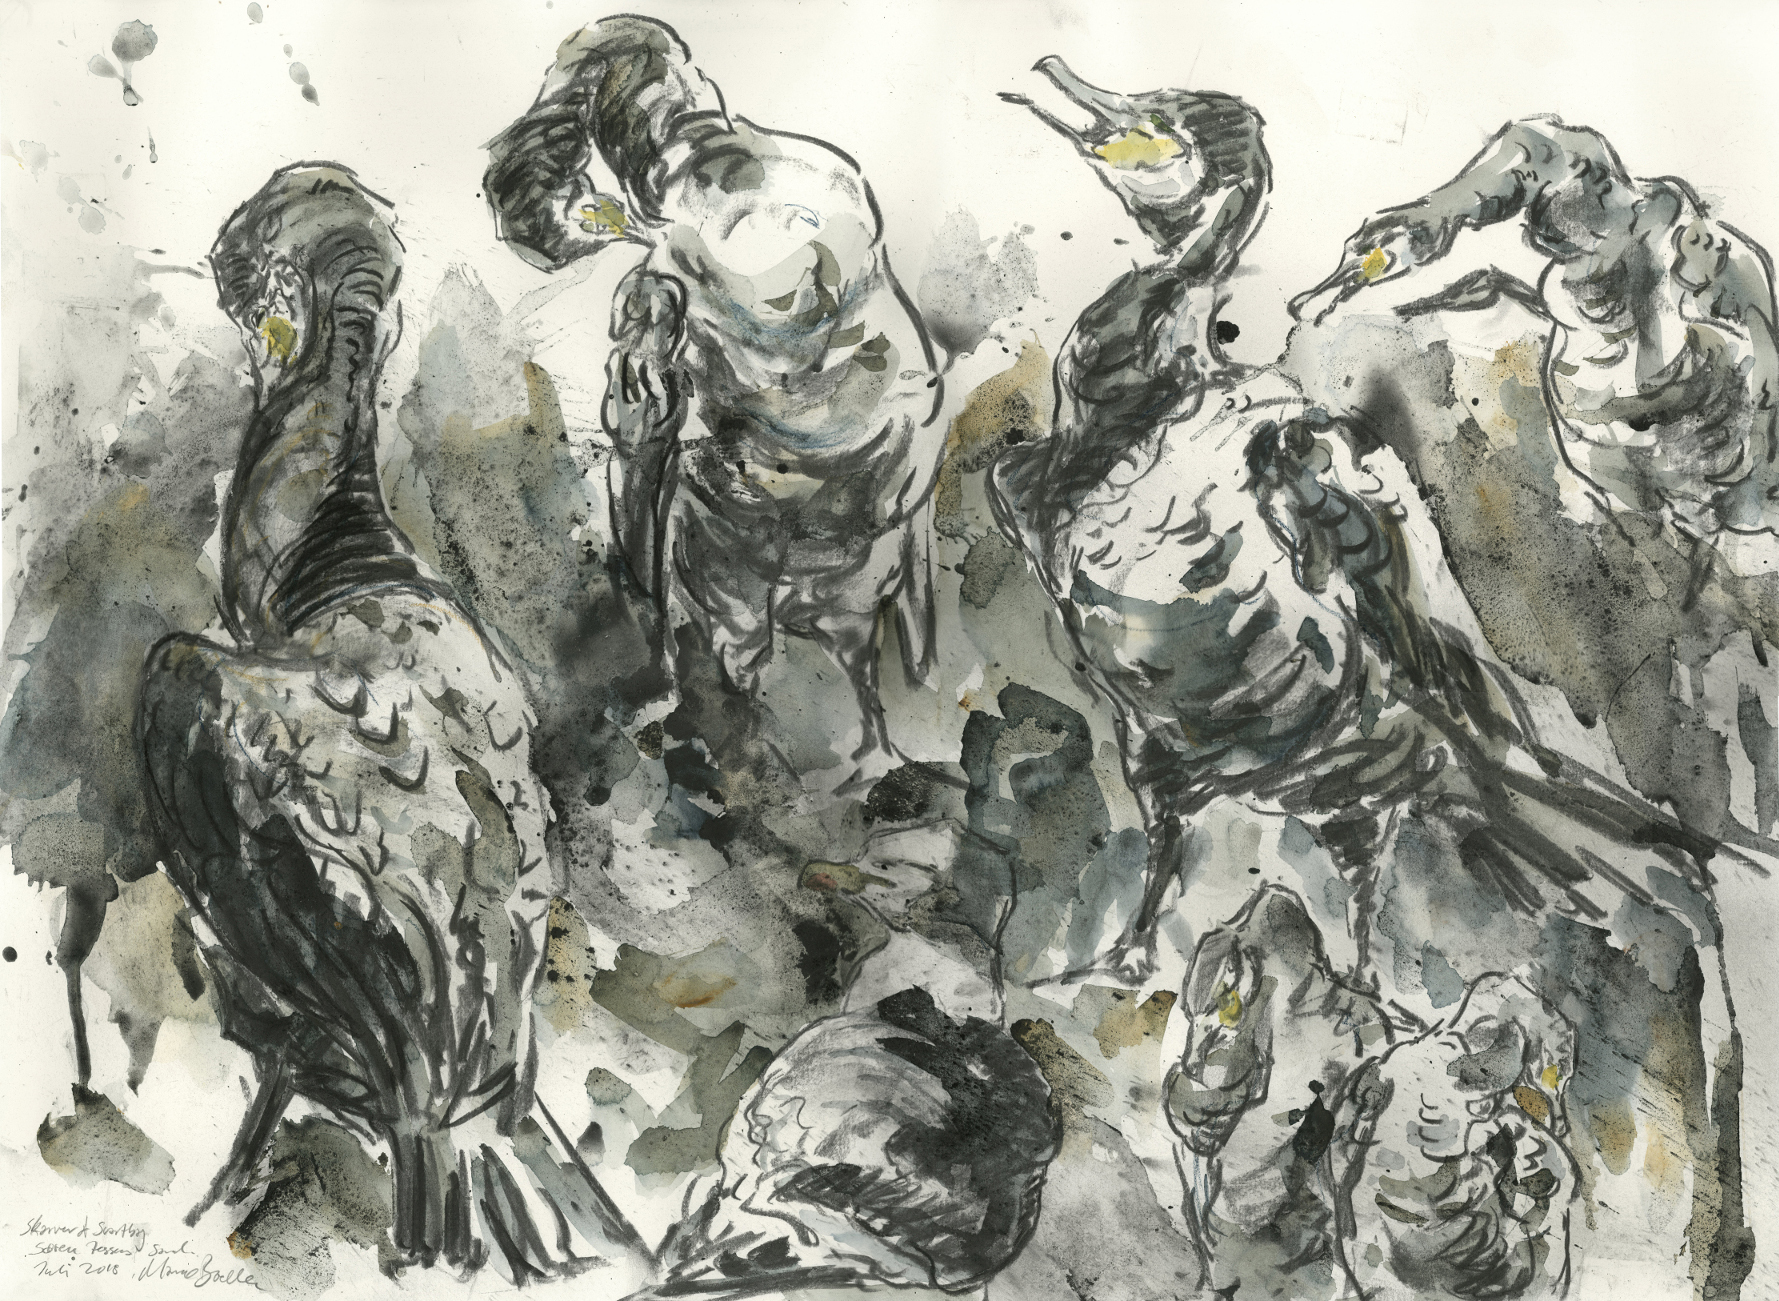 Cormorants in the summer heat, Watercolour and charcoal on paper, 80 cm x 100 cm